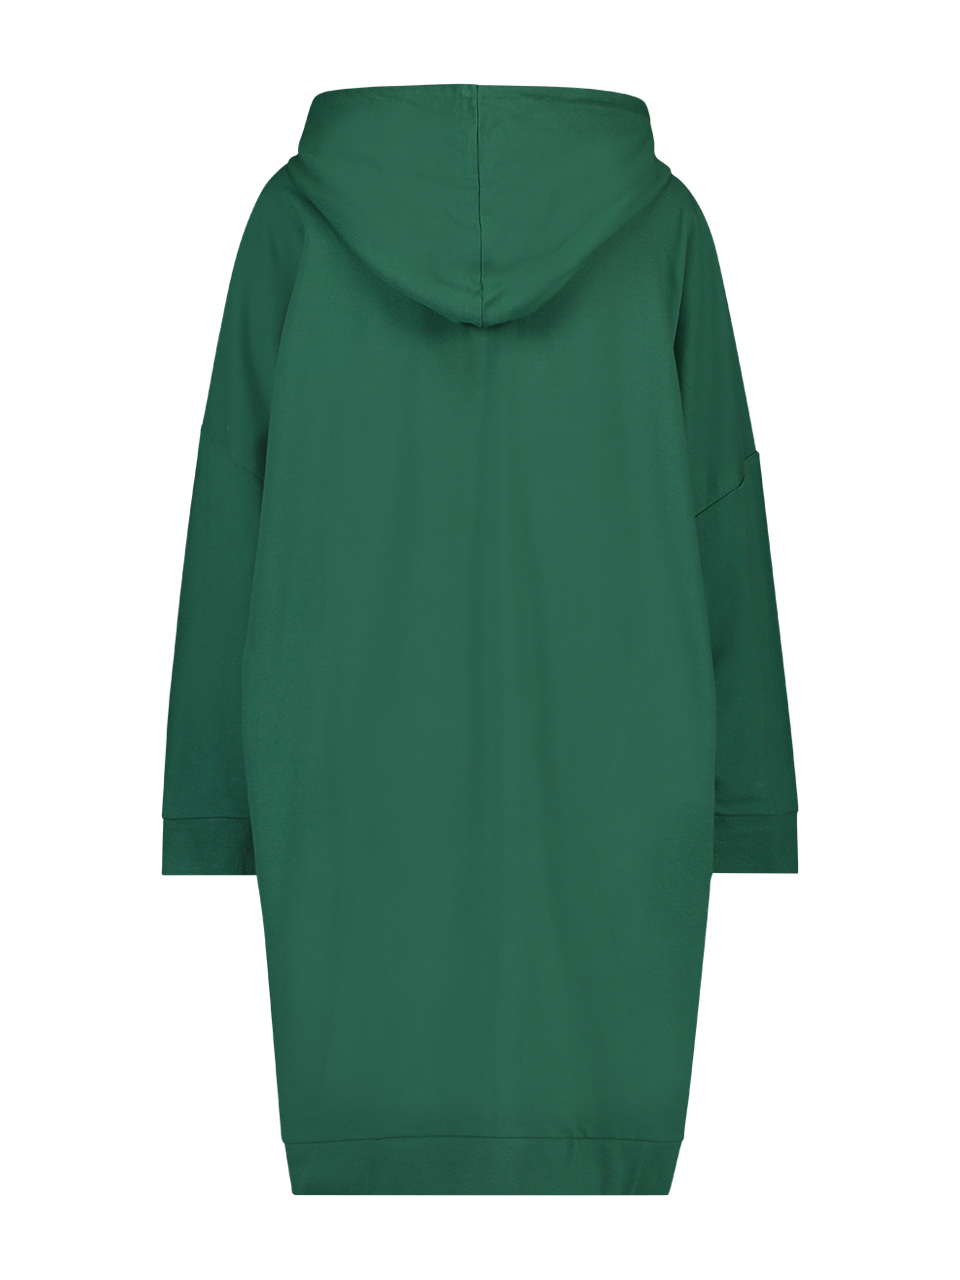 Dress sweater french knit - Green